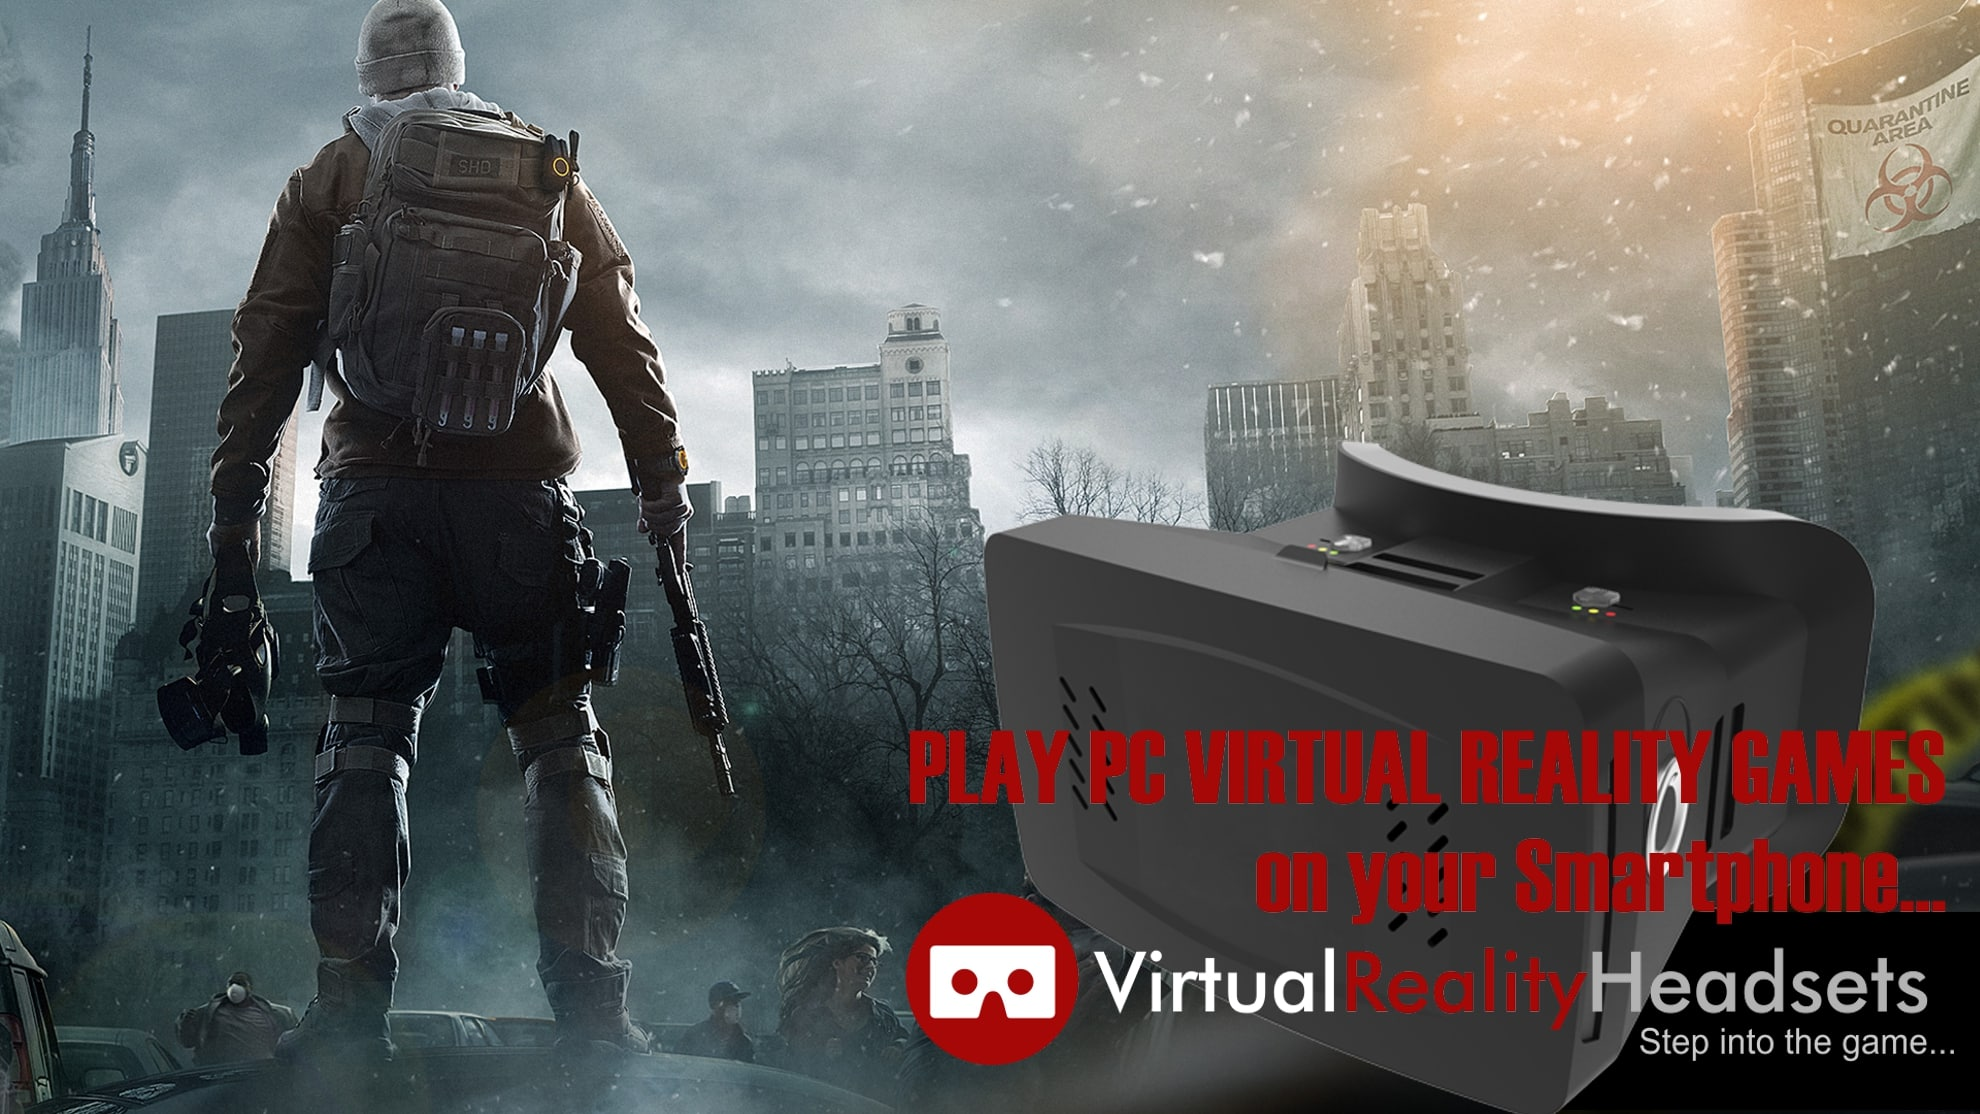 play-Virtual-Reality-PC-Games-on-your-Smartphone